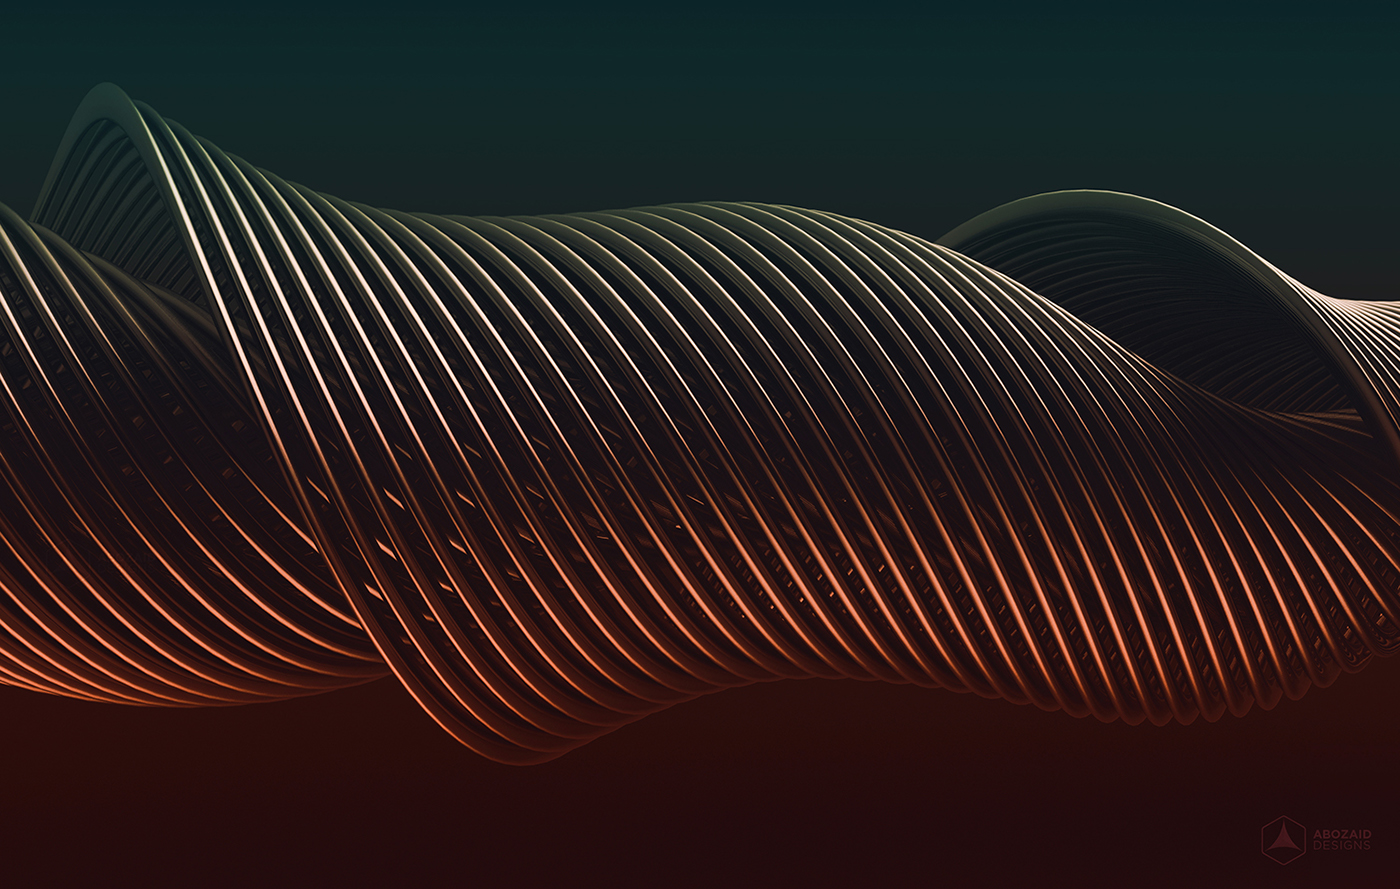 3D wire photoshop lines 3dart gold red blue 4K background